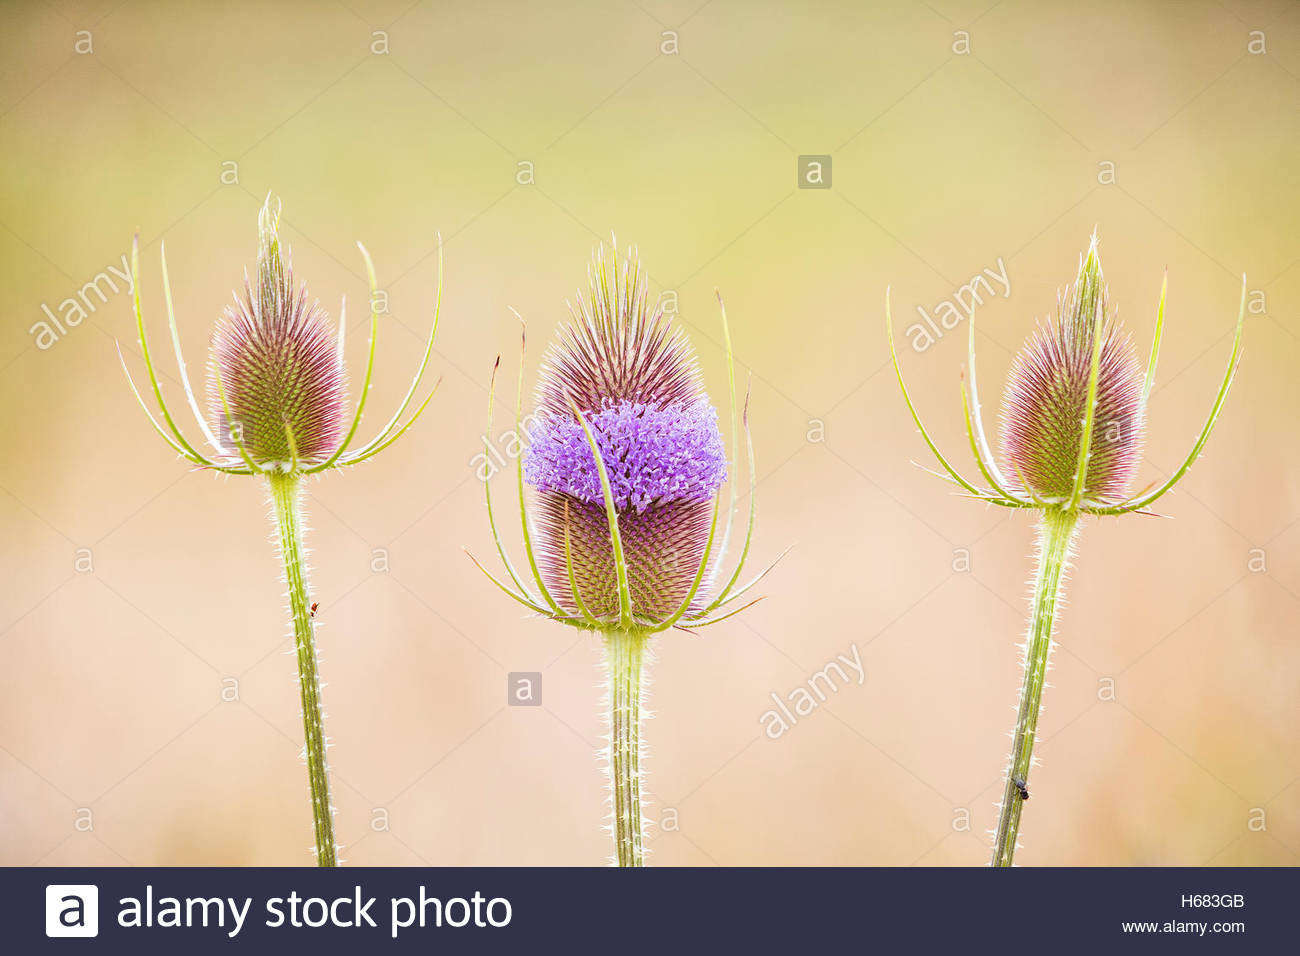 Three spear thistle plants (Cirsium vulgare), also known as bull thistle, begin to bloom in Snohomish, Washington. Stock Photo